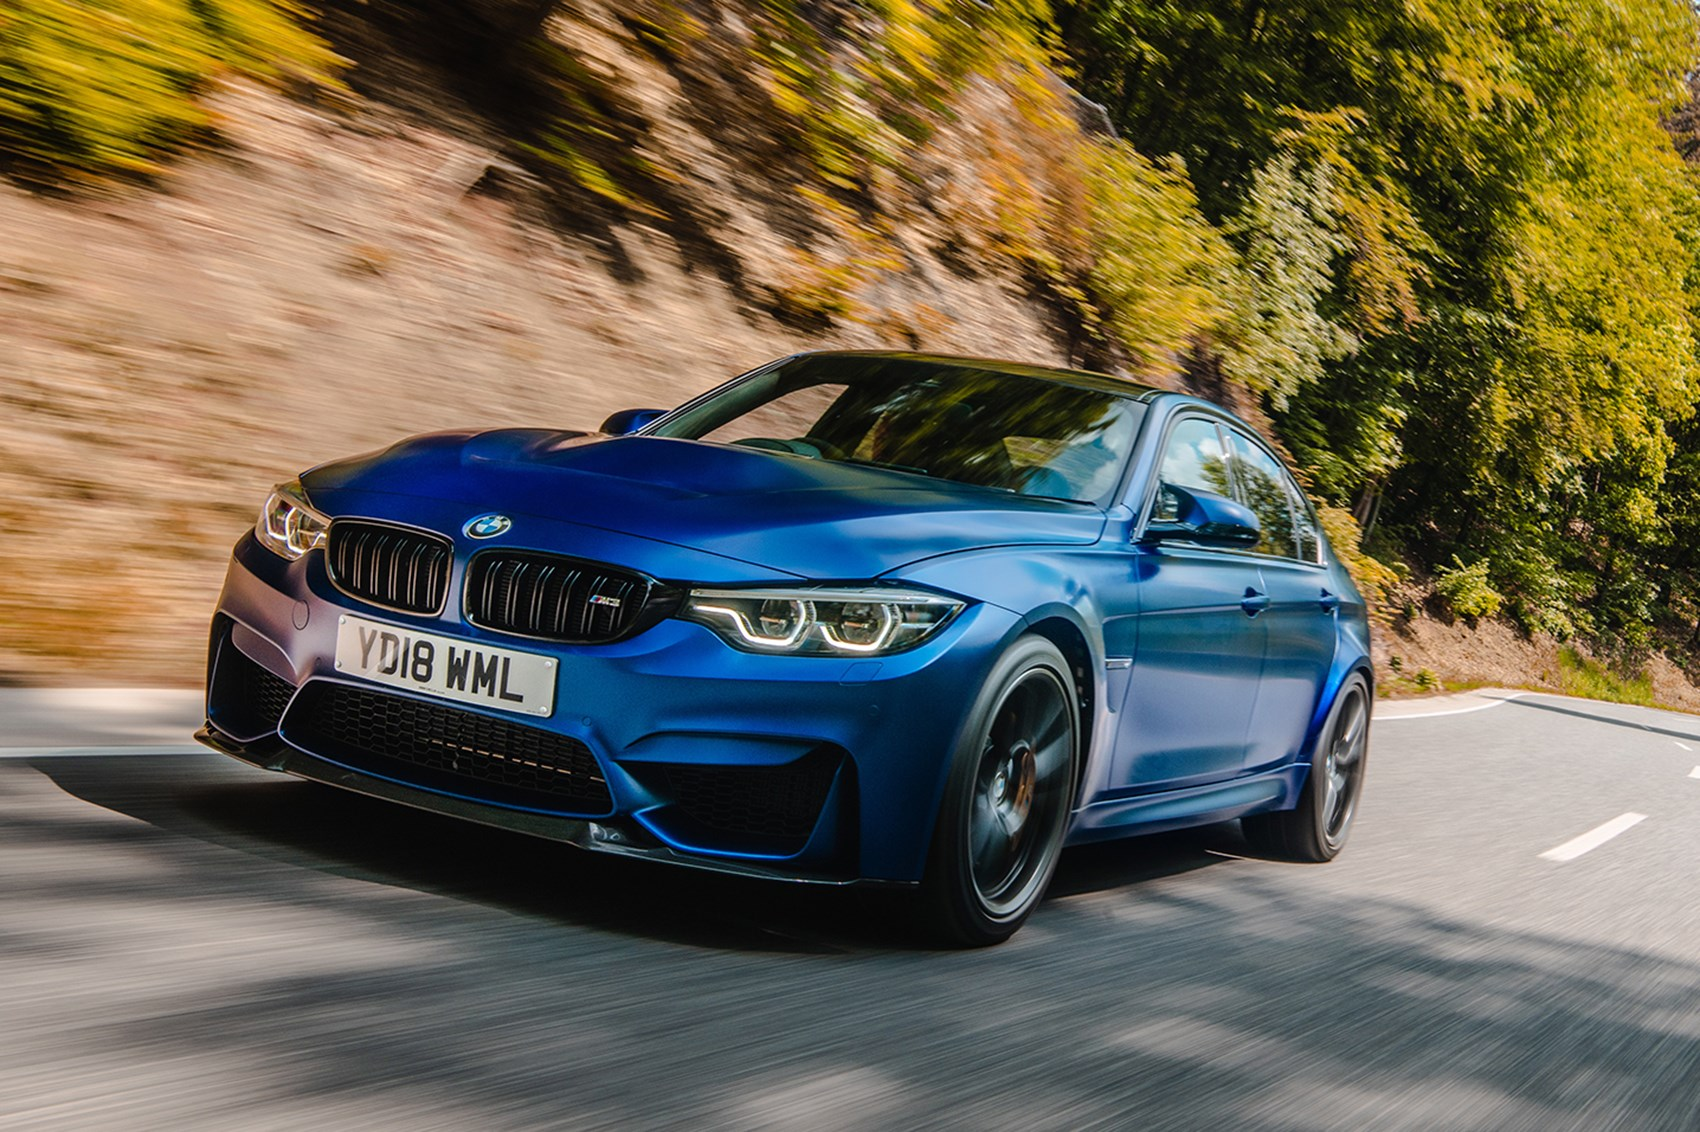 Bmw M3 Cs 2018 Review The Best F80 M3 Yet Befirstrank